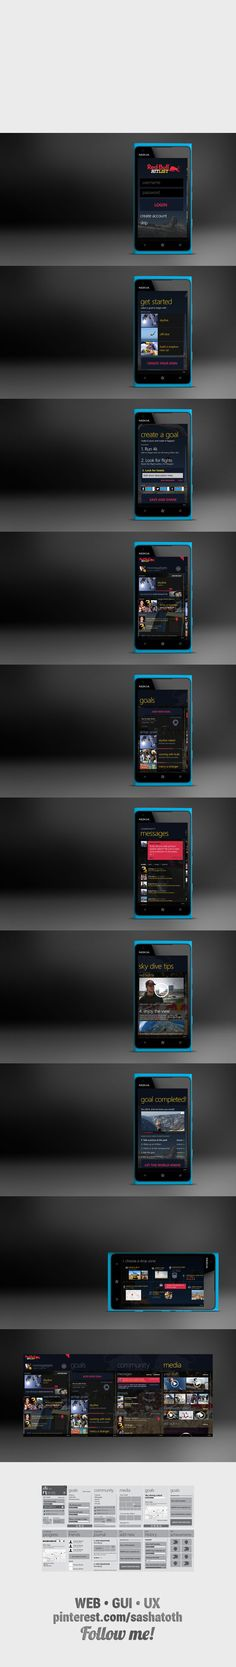 "Nokia & RedBull - Hitlist *** ""Pitch work for an original app on Windows Metro for a partnership between Nokia and RedBull."" by Alexandre Lacerda, via Behance * #windowsphone #nokia #gui #redbull #behance"